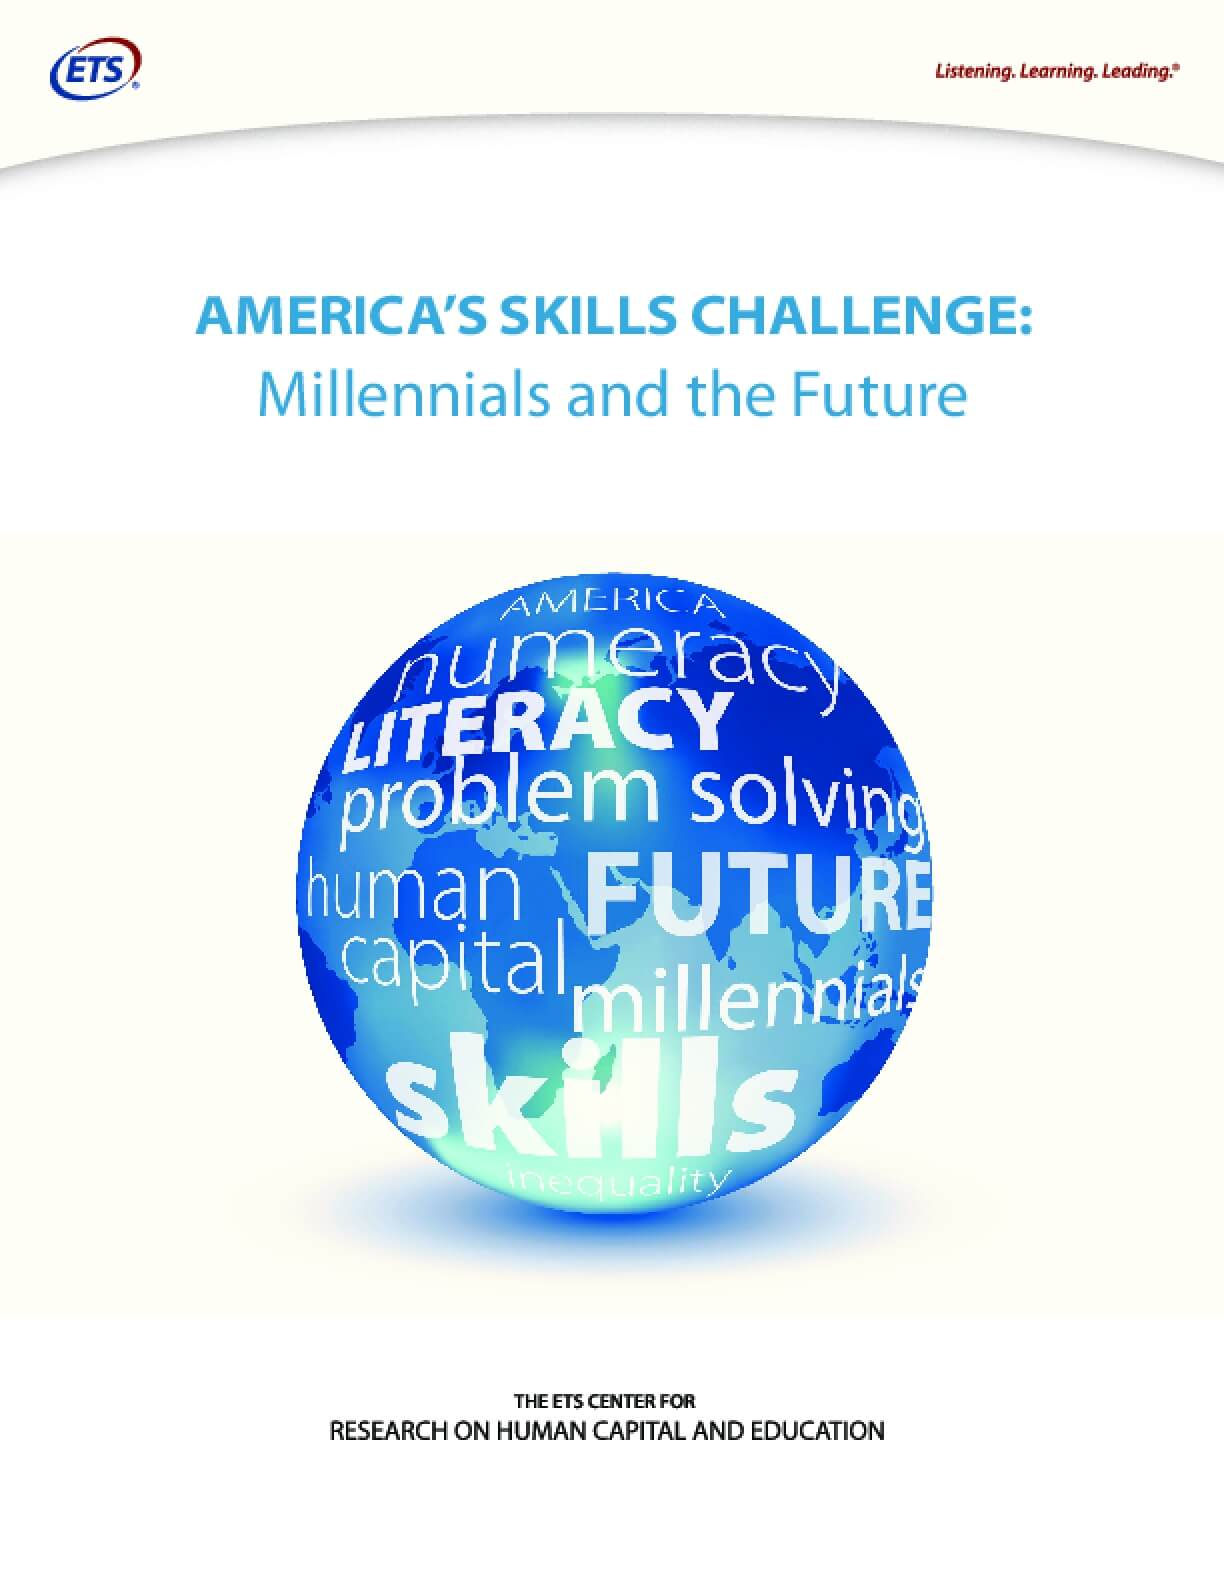 America's Skills Challenge: Millennials and the Future